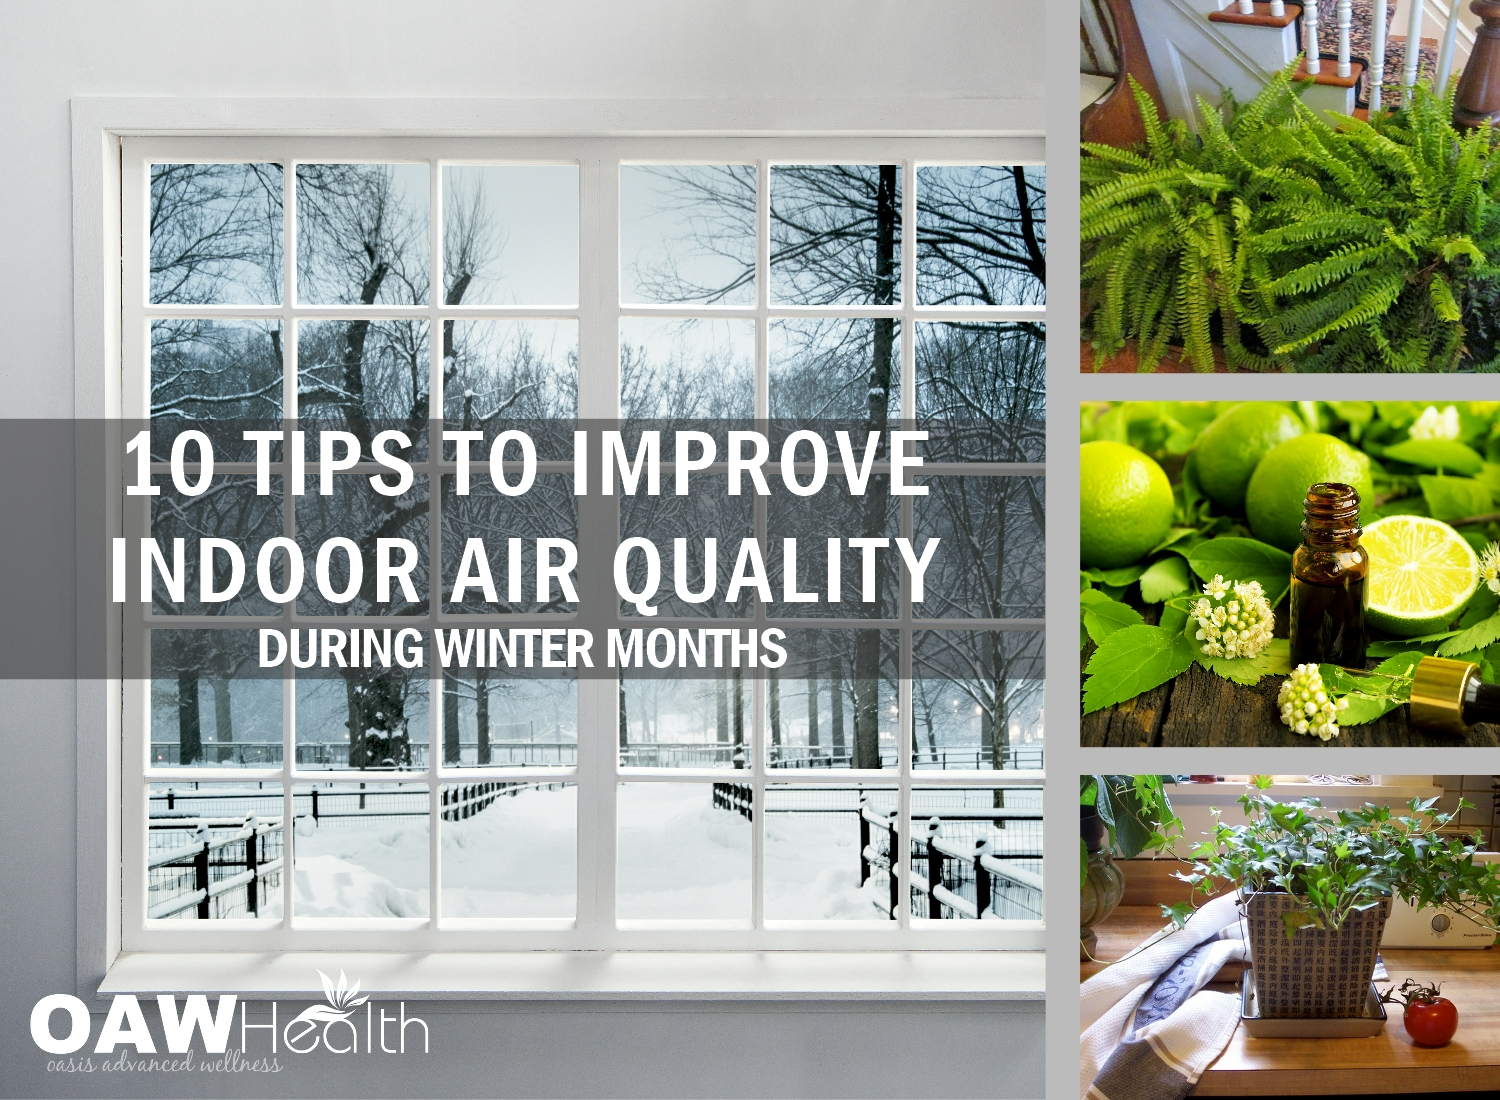 10 Tips to Improve Indoor Air Quality During Winter Months